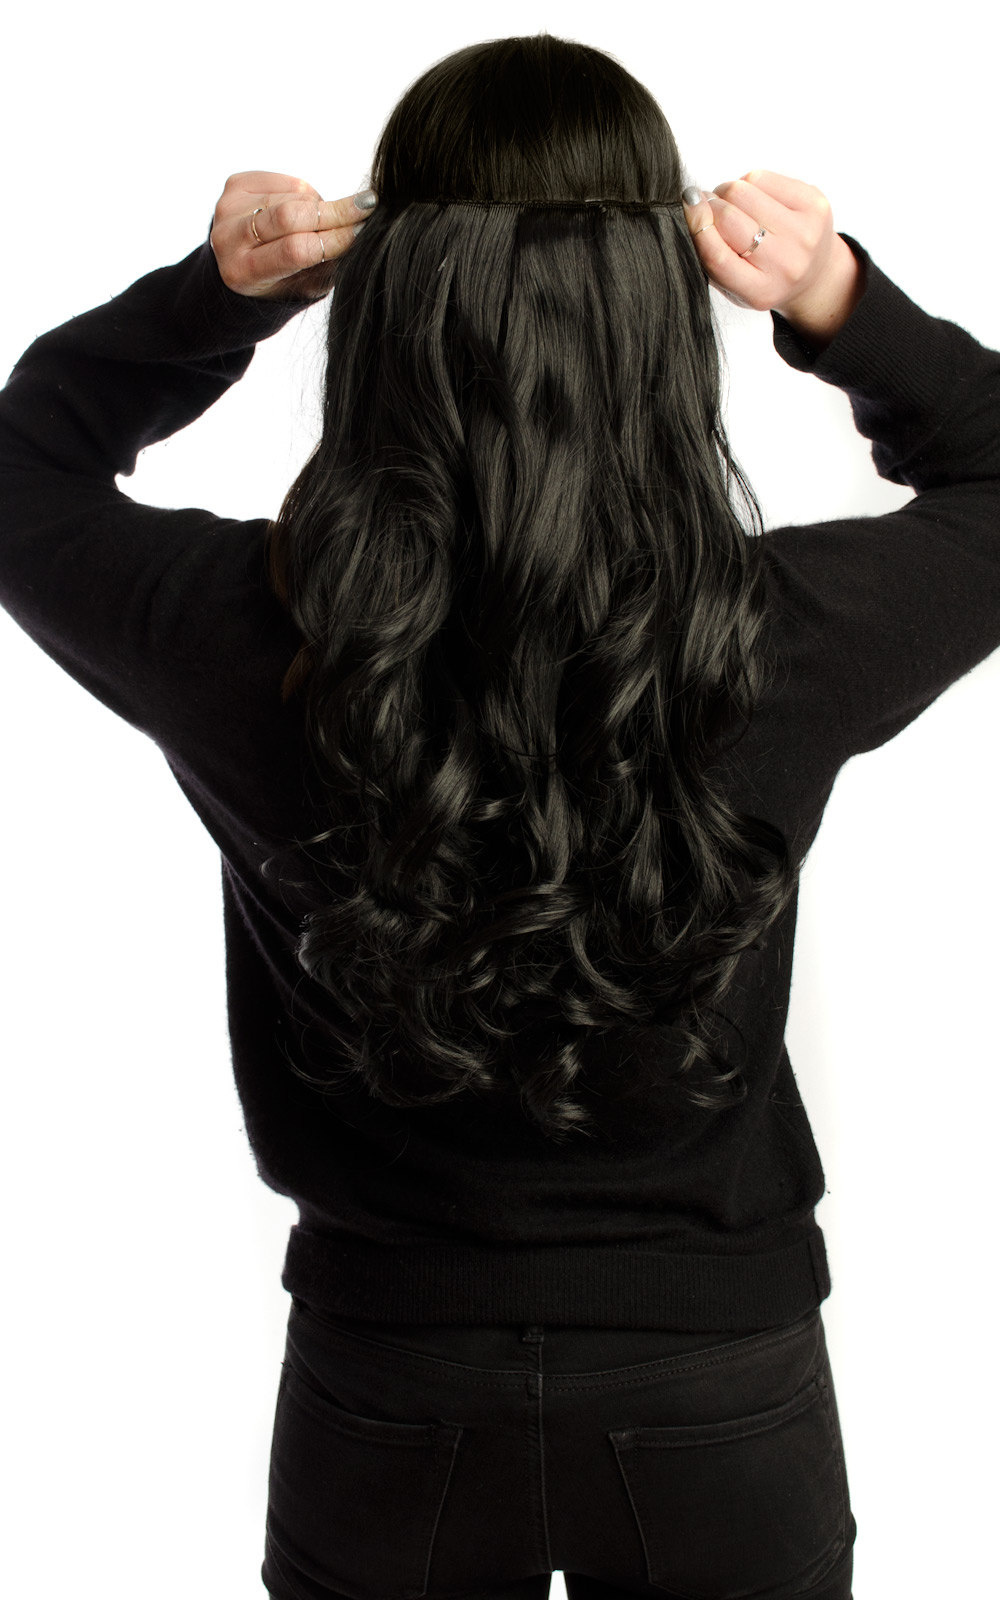 IKRUSH-Women-039-s-Intense-Volume-Clip-In-Hair-Extensions-Curly-in-JET-BLACK